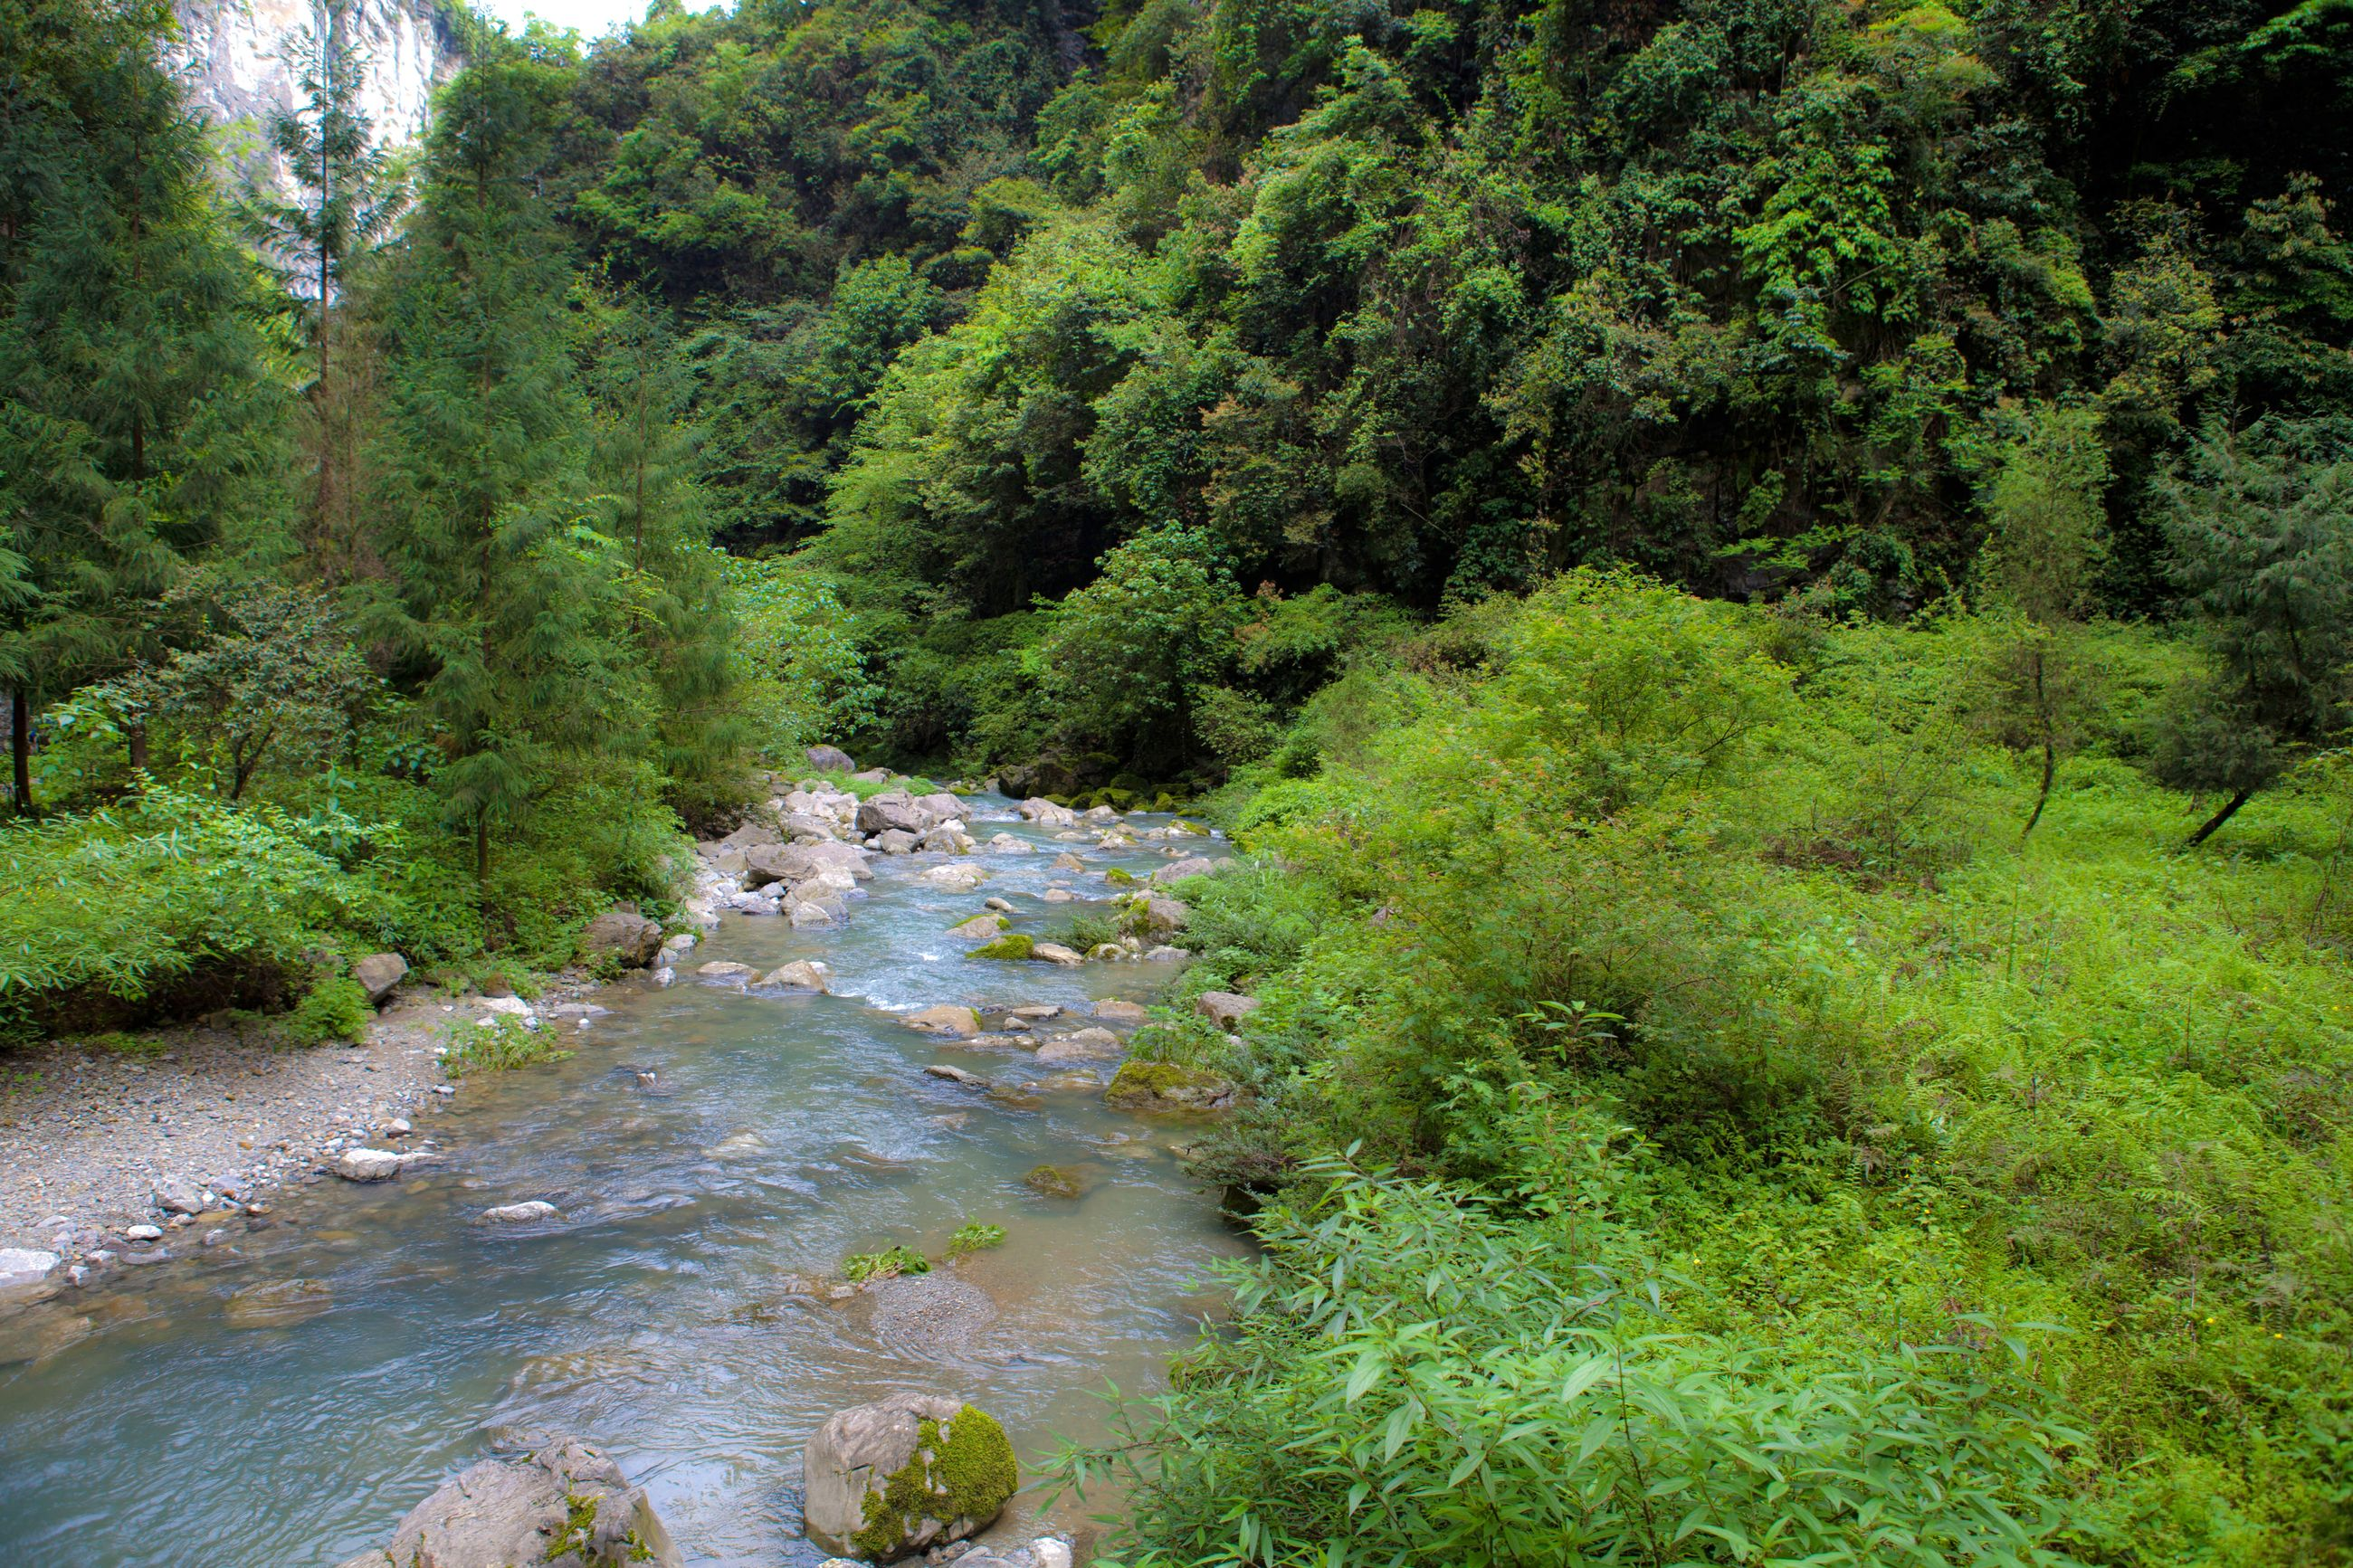 tree, water, forest, tranquil scene, stream, scenics, tranquility, river, green color, flowing, non-urban scene, nature, beauty in nature, flowing water, idyllic, growth, woodland, day, remote, outdoors, wilderness, wilderness area, vacations, tourism, no people, narrow, waterfront, solitude, lush foliage